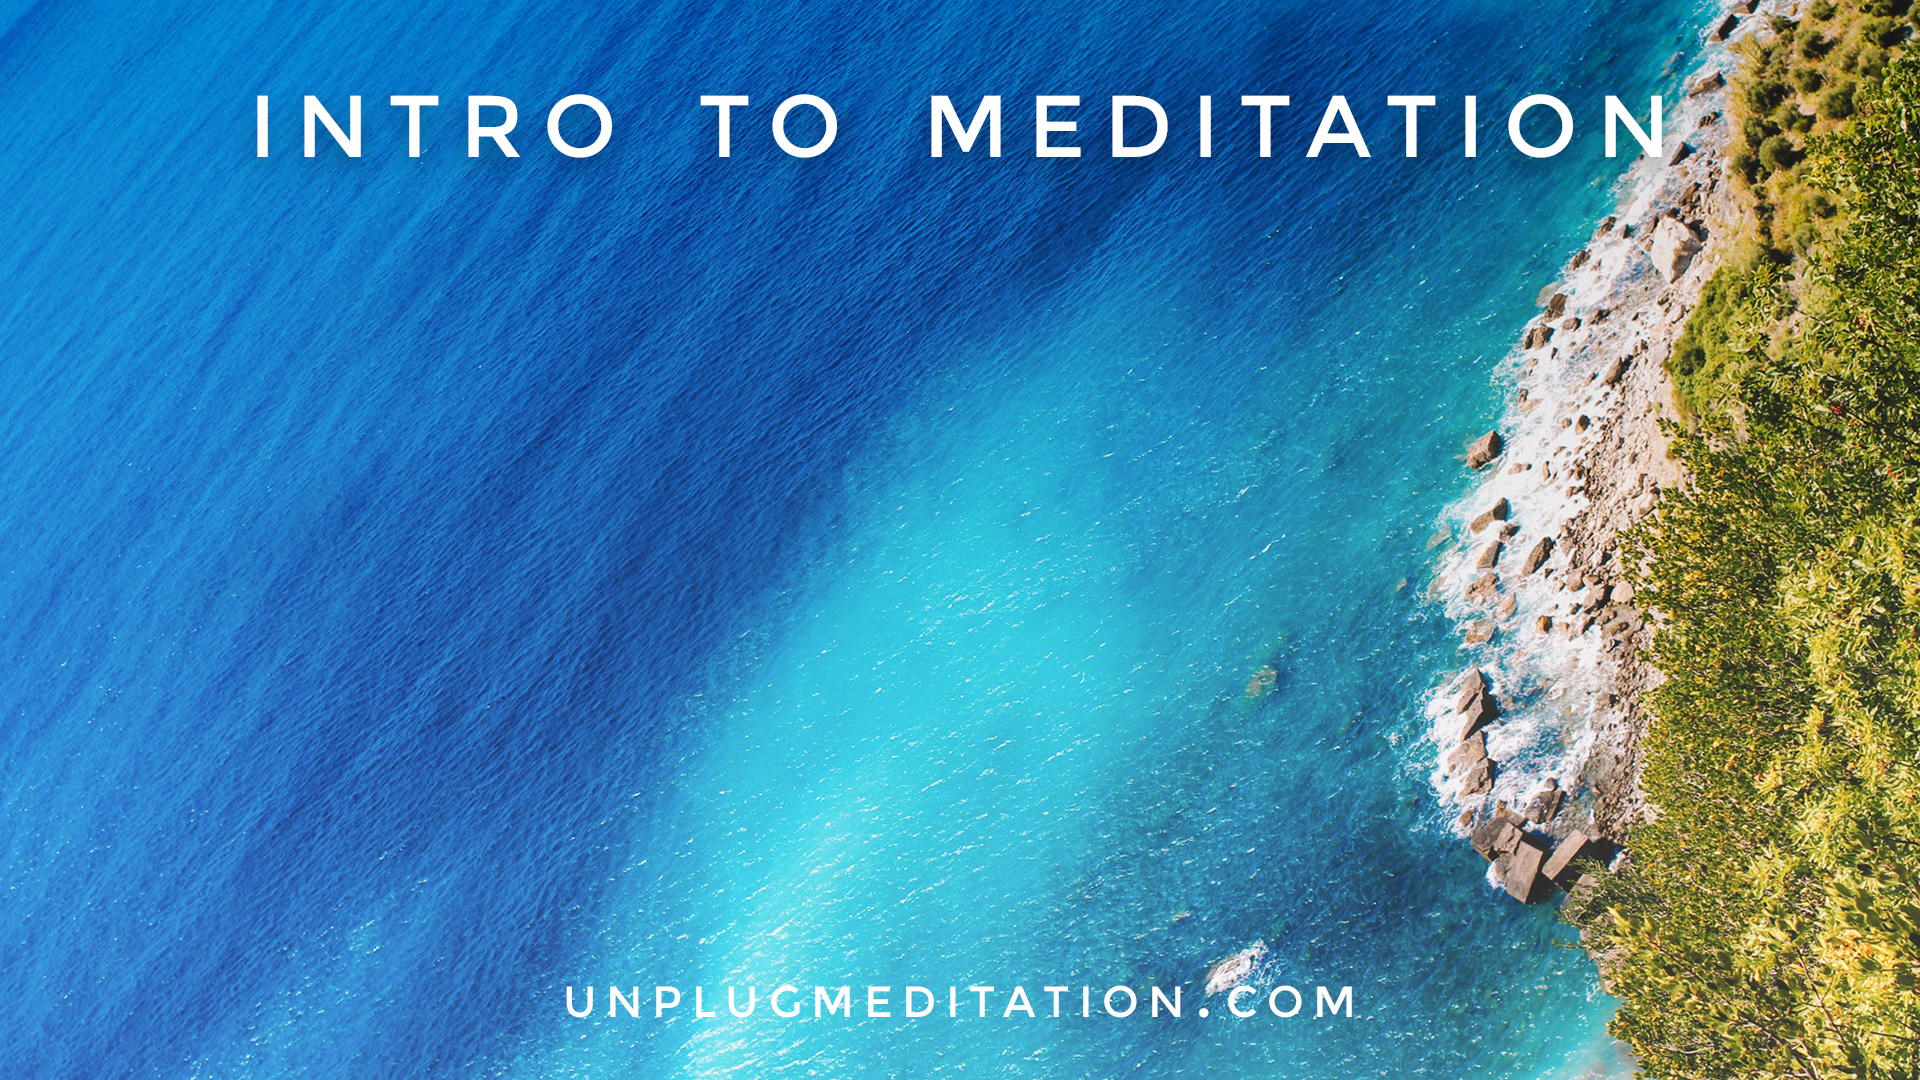 Unplug-Meditation-VHX-Covers-Artwork_INTRO-TO-MEDITATION.jpg